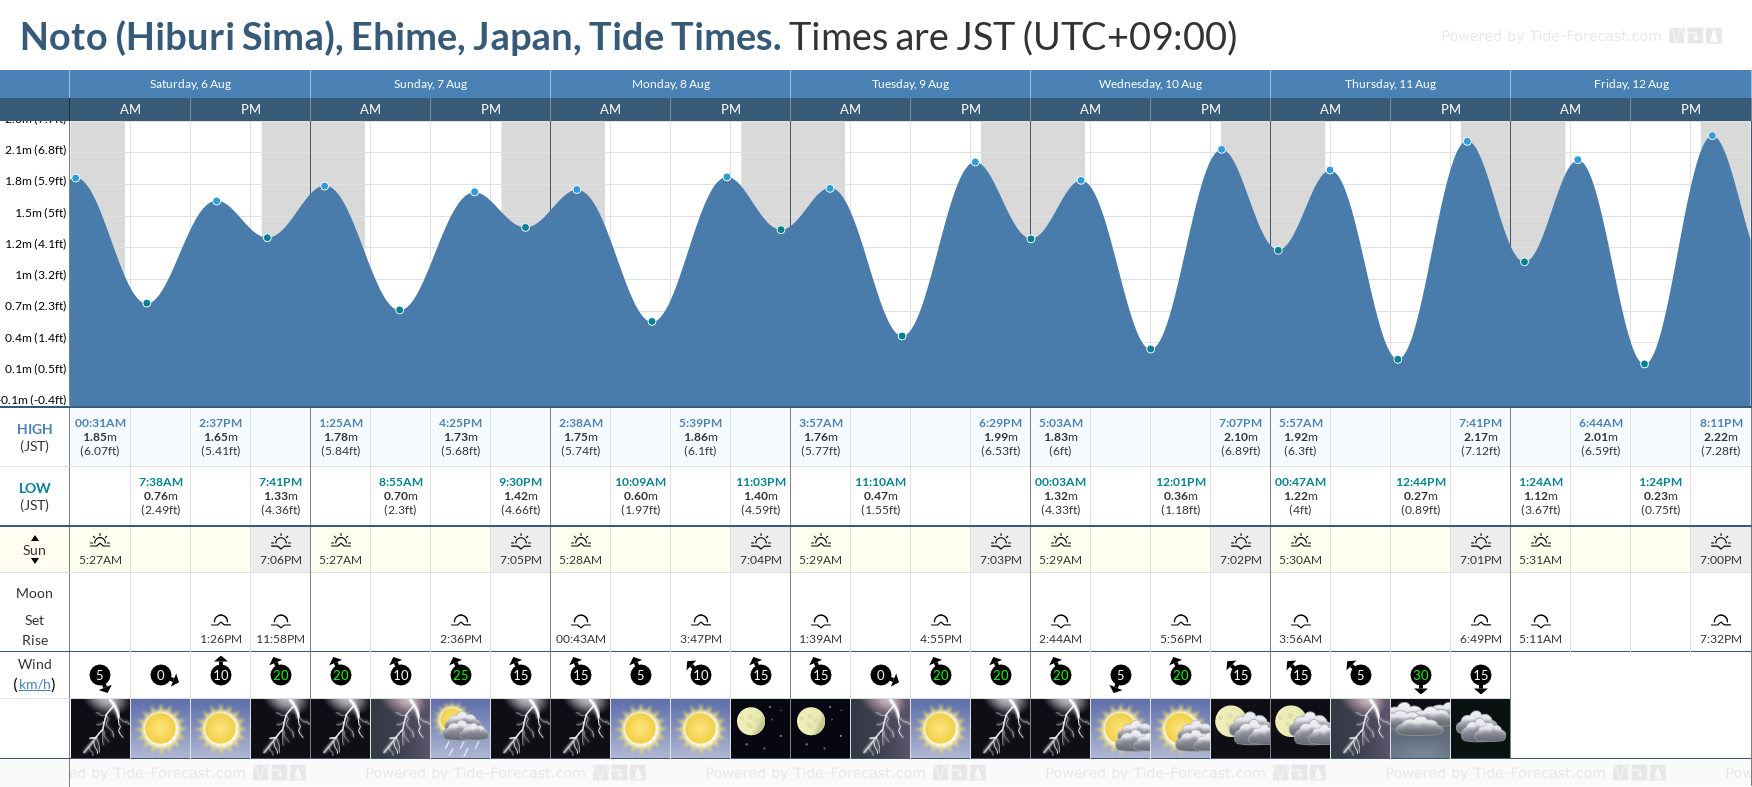 Noto (Hiburi Sima), Ehime, Japan Tide Chart including high and low tide tide times for the next 7 days